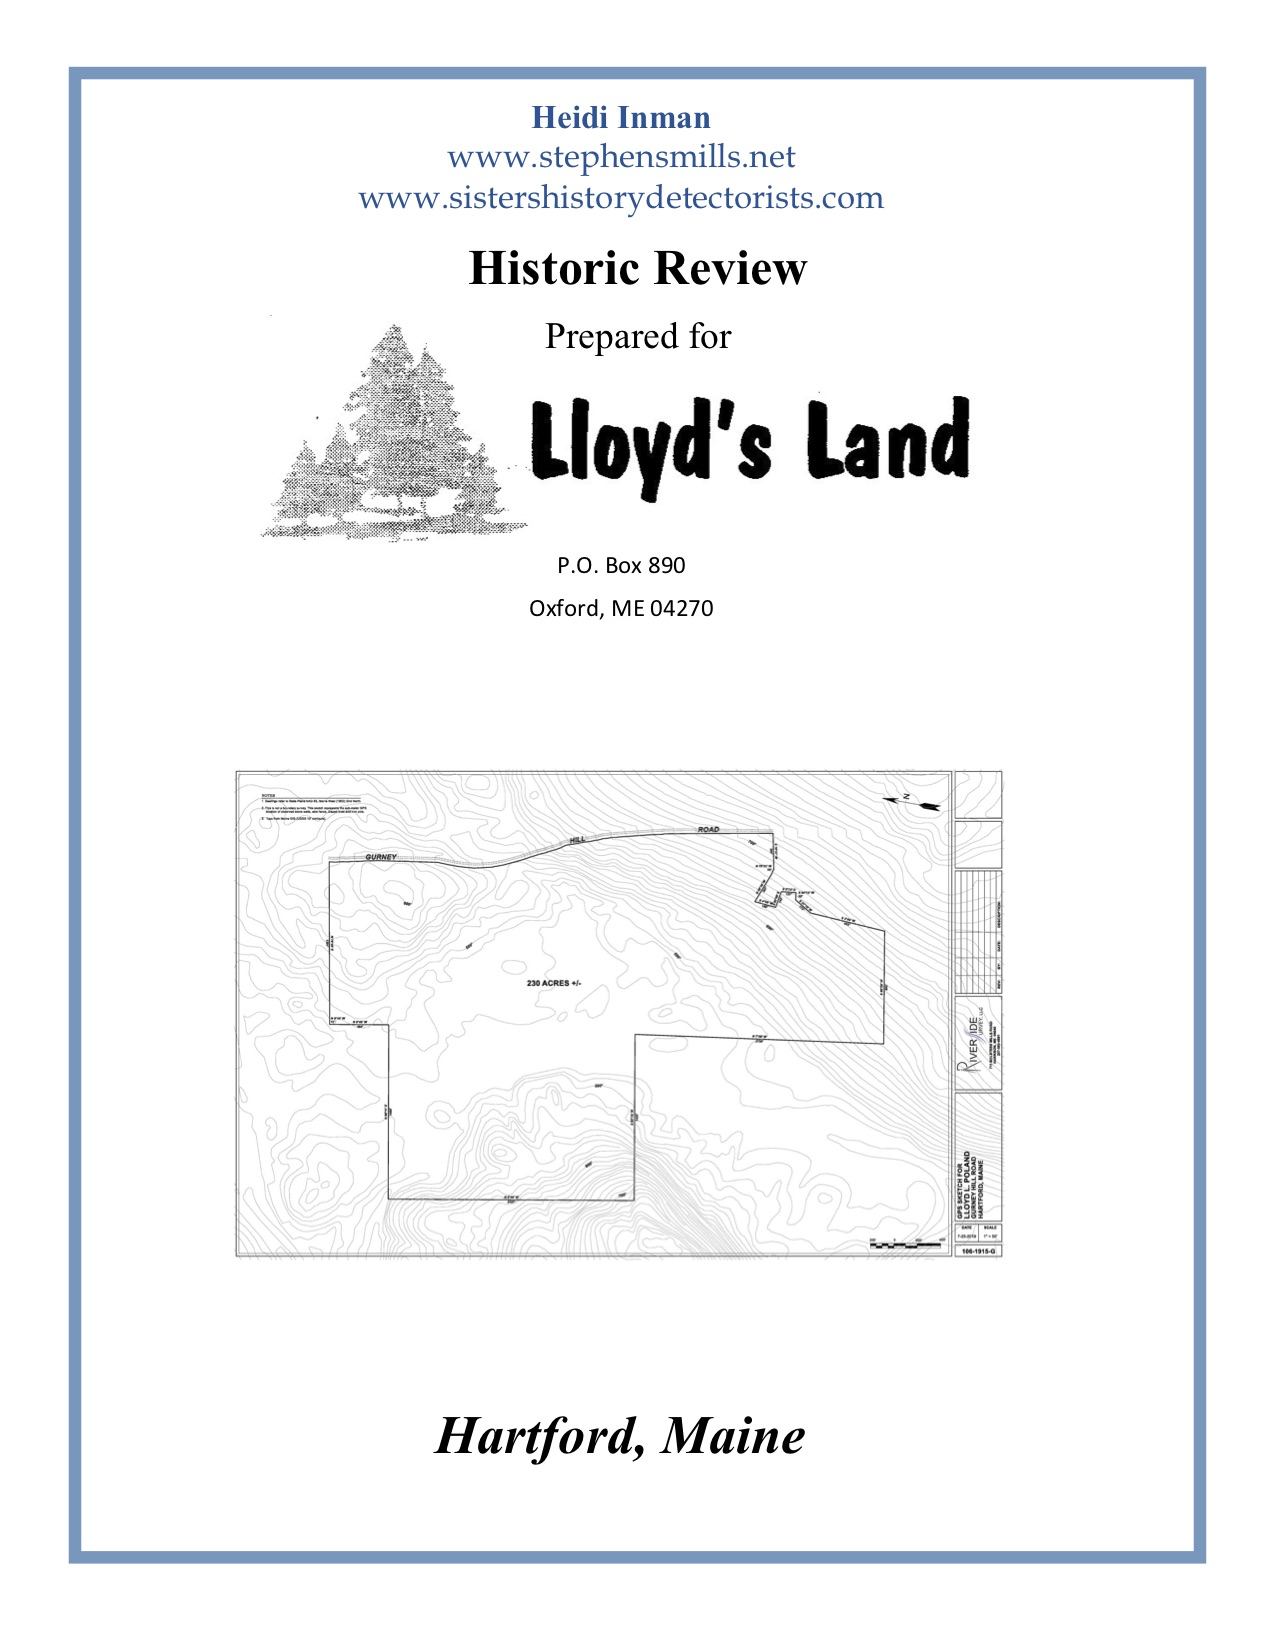 CLICK HERE TO VIEW - HARTFORD 230 ACRES HISTORIC REVIEW